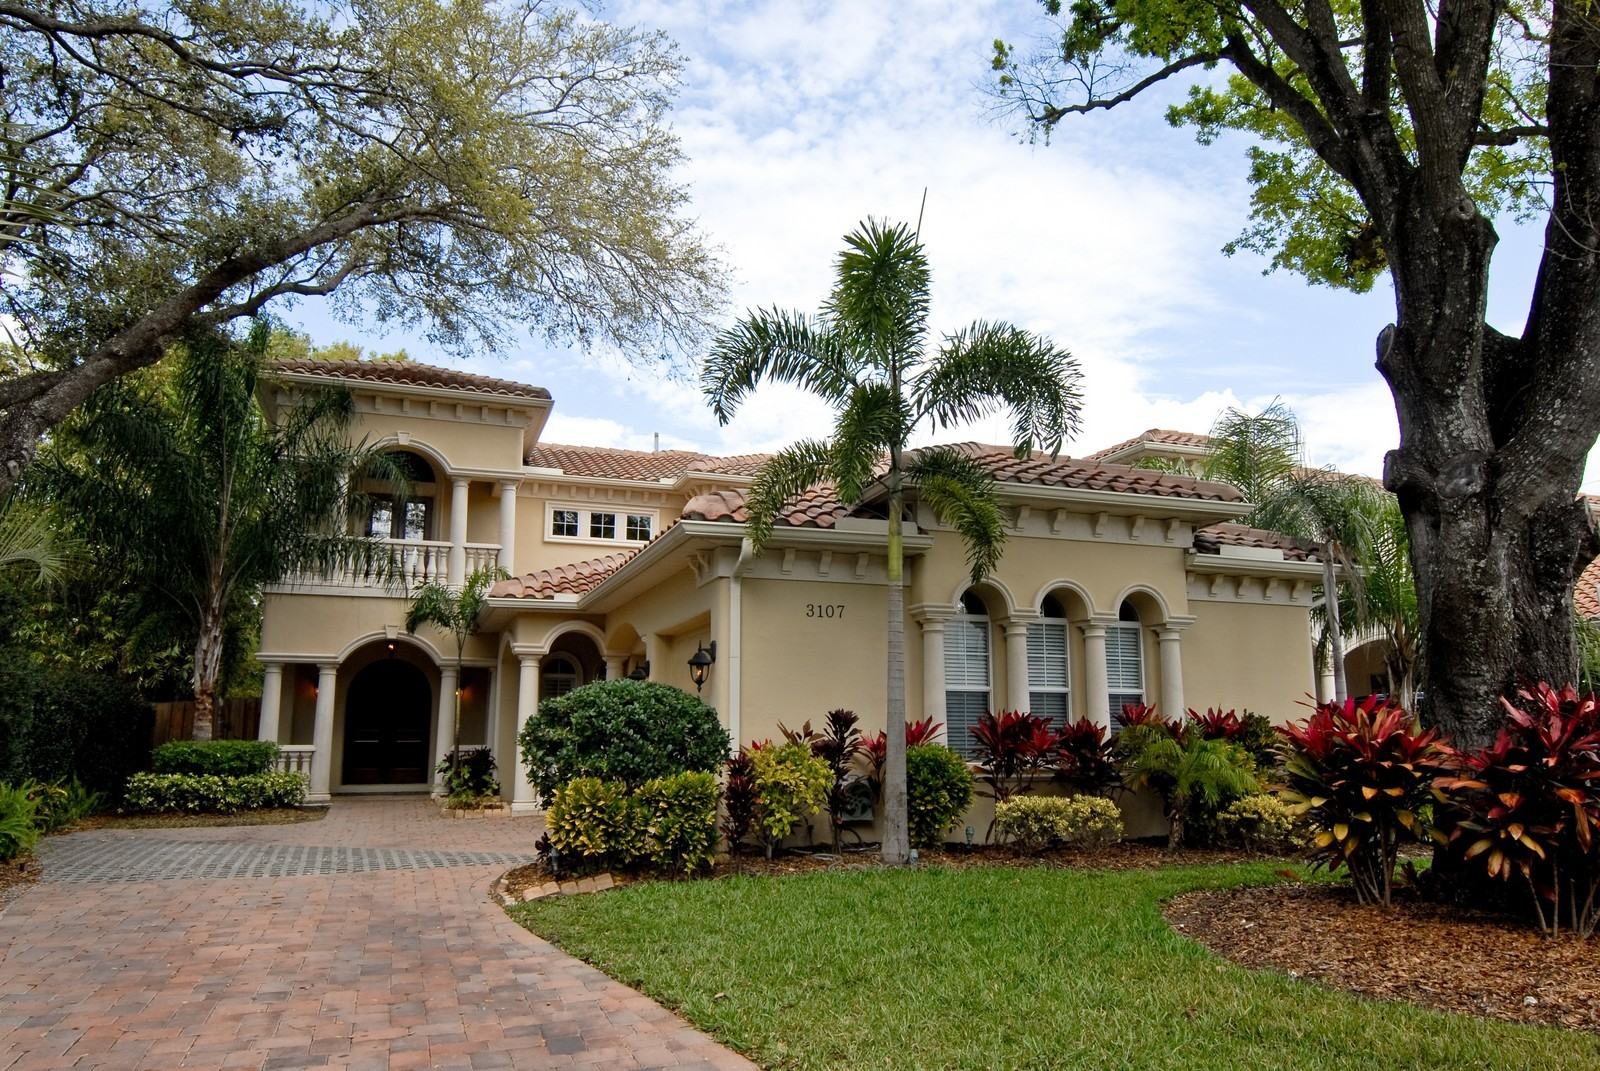 Real Estate Photography - 3107 Fountain Blvd, Tampa, FL, 33609 - Front View